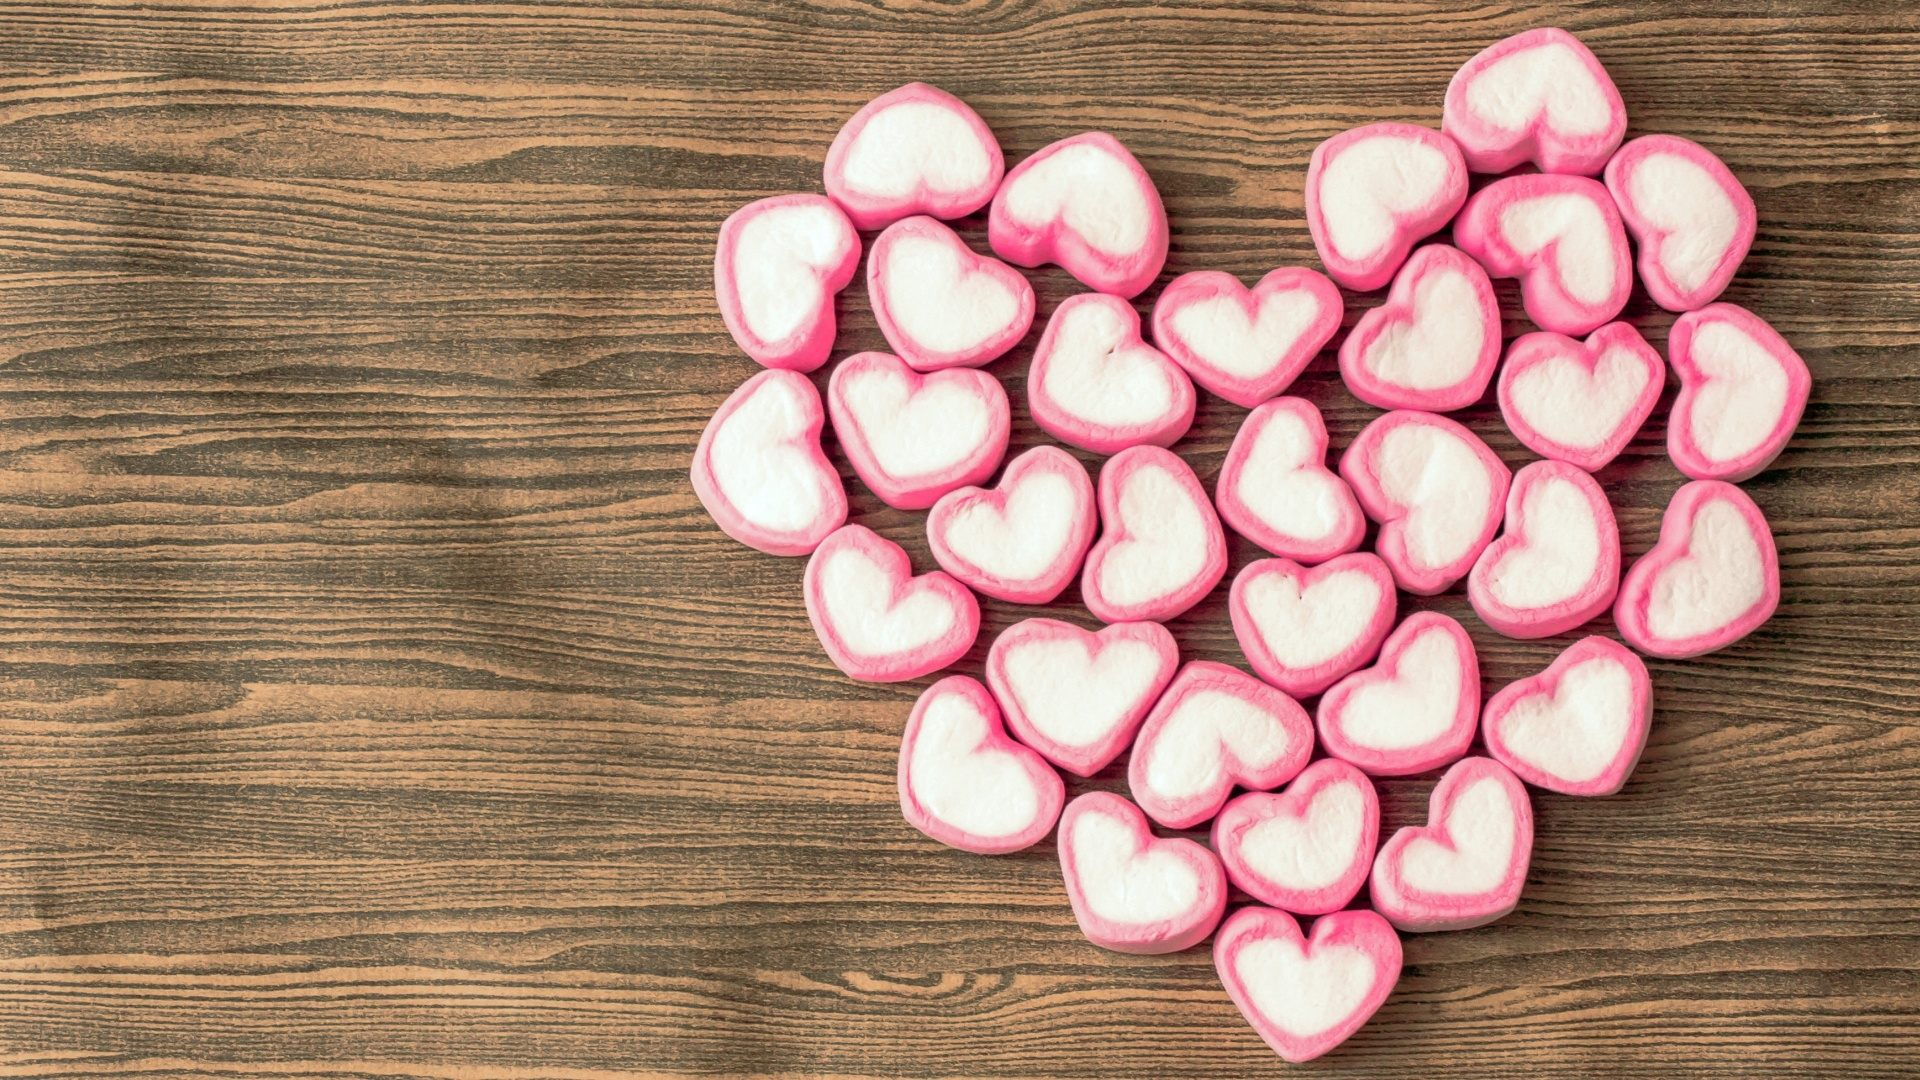 candy hearts desktop wallpaper hd 61763 1920x1080 px